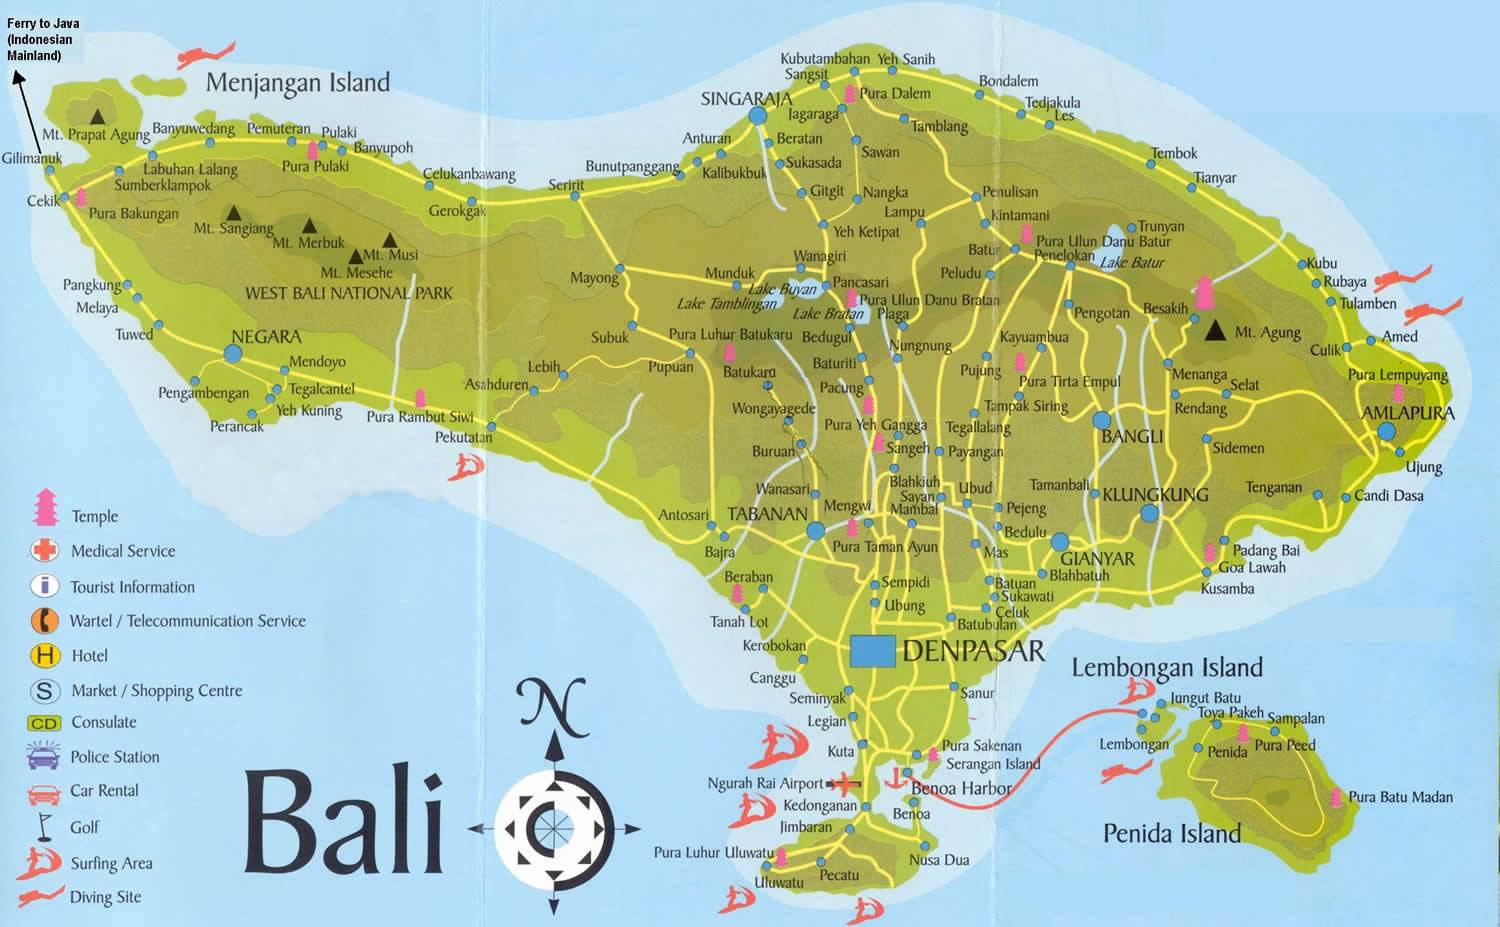 large-bali-maps-for-free-download-and-print-on-world-map